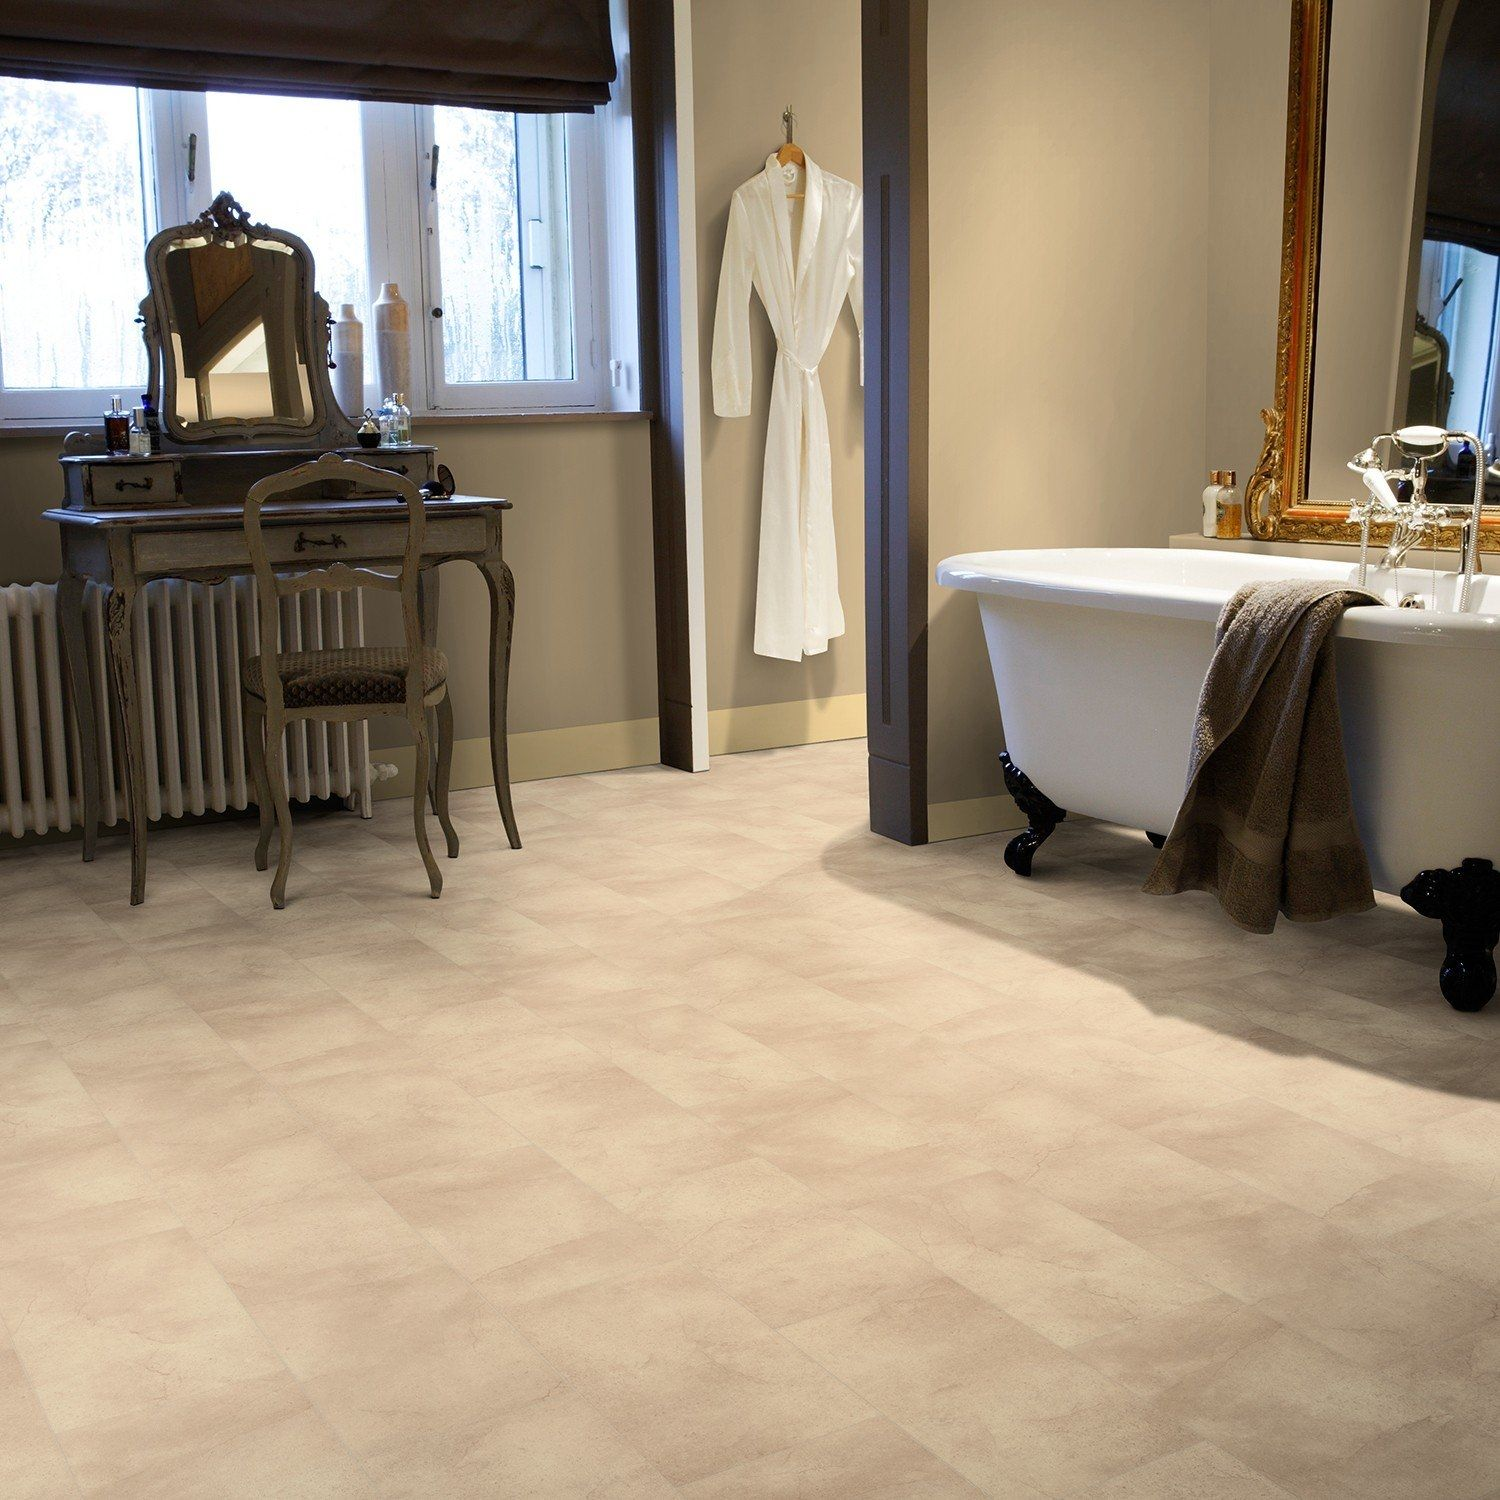 Image Gallery For Website Is Laminate Flooring Suitable For Bathrooms